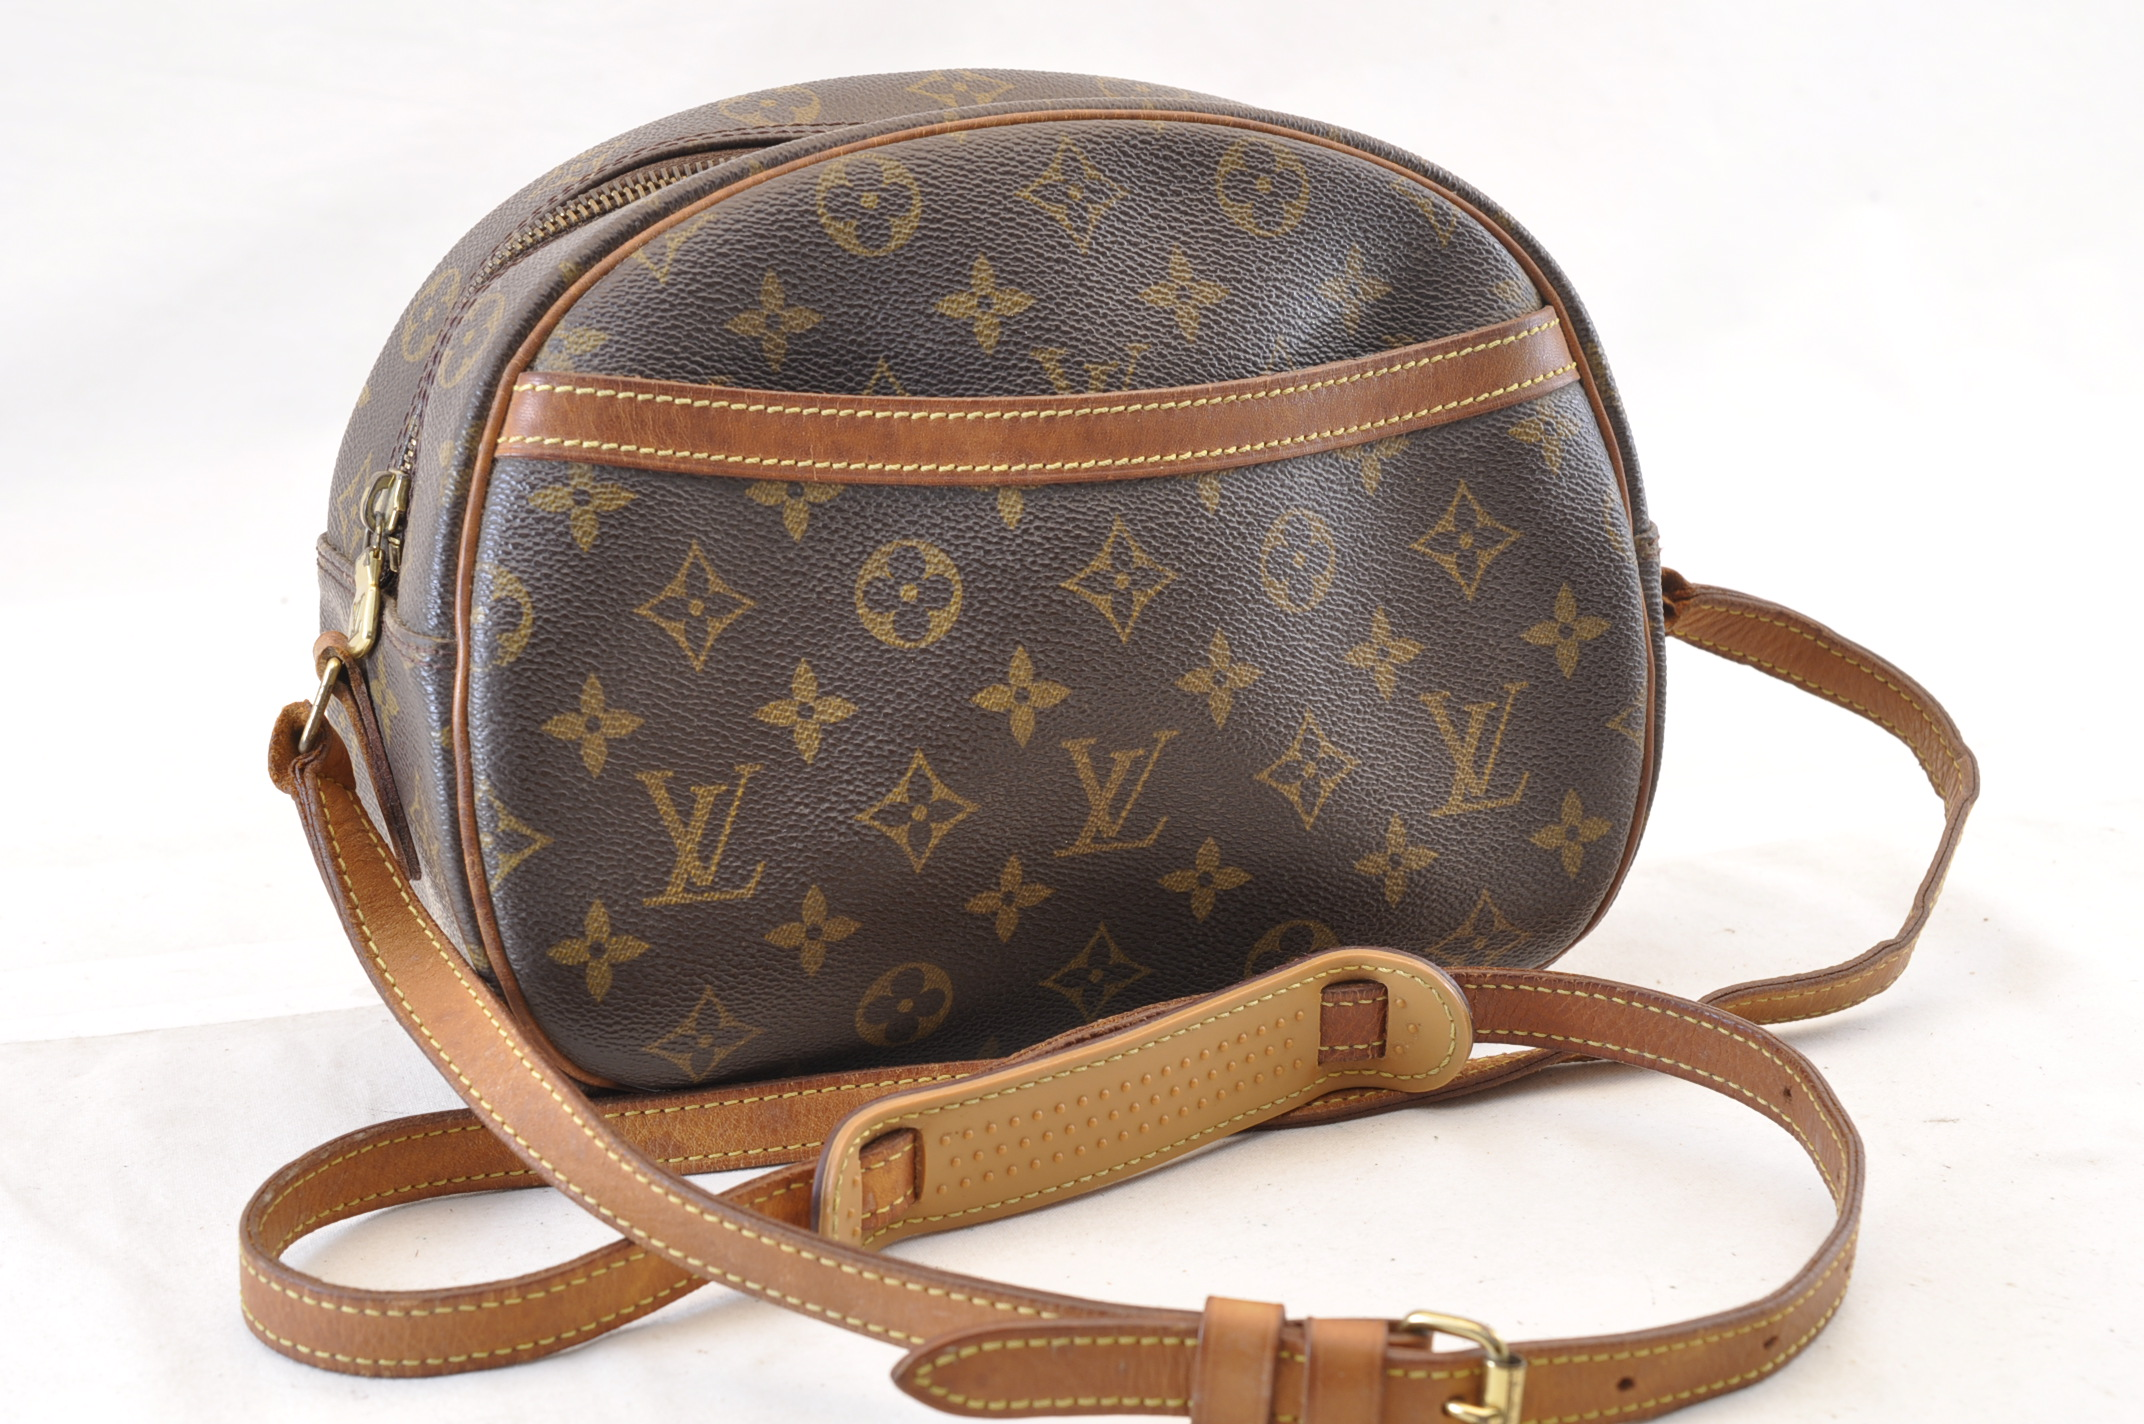 5a7614cdd481 LOUIS VUITTON Monogram Blois Shoulder Bag M51221 LV Auth 6317 ...